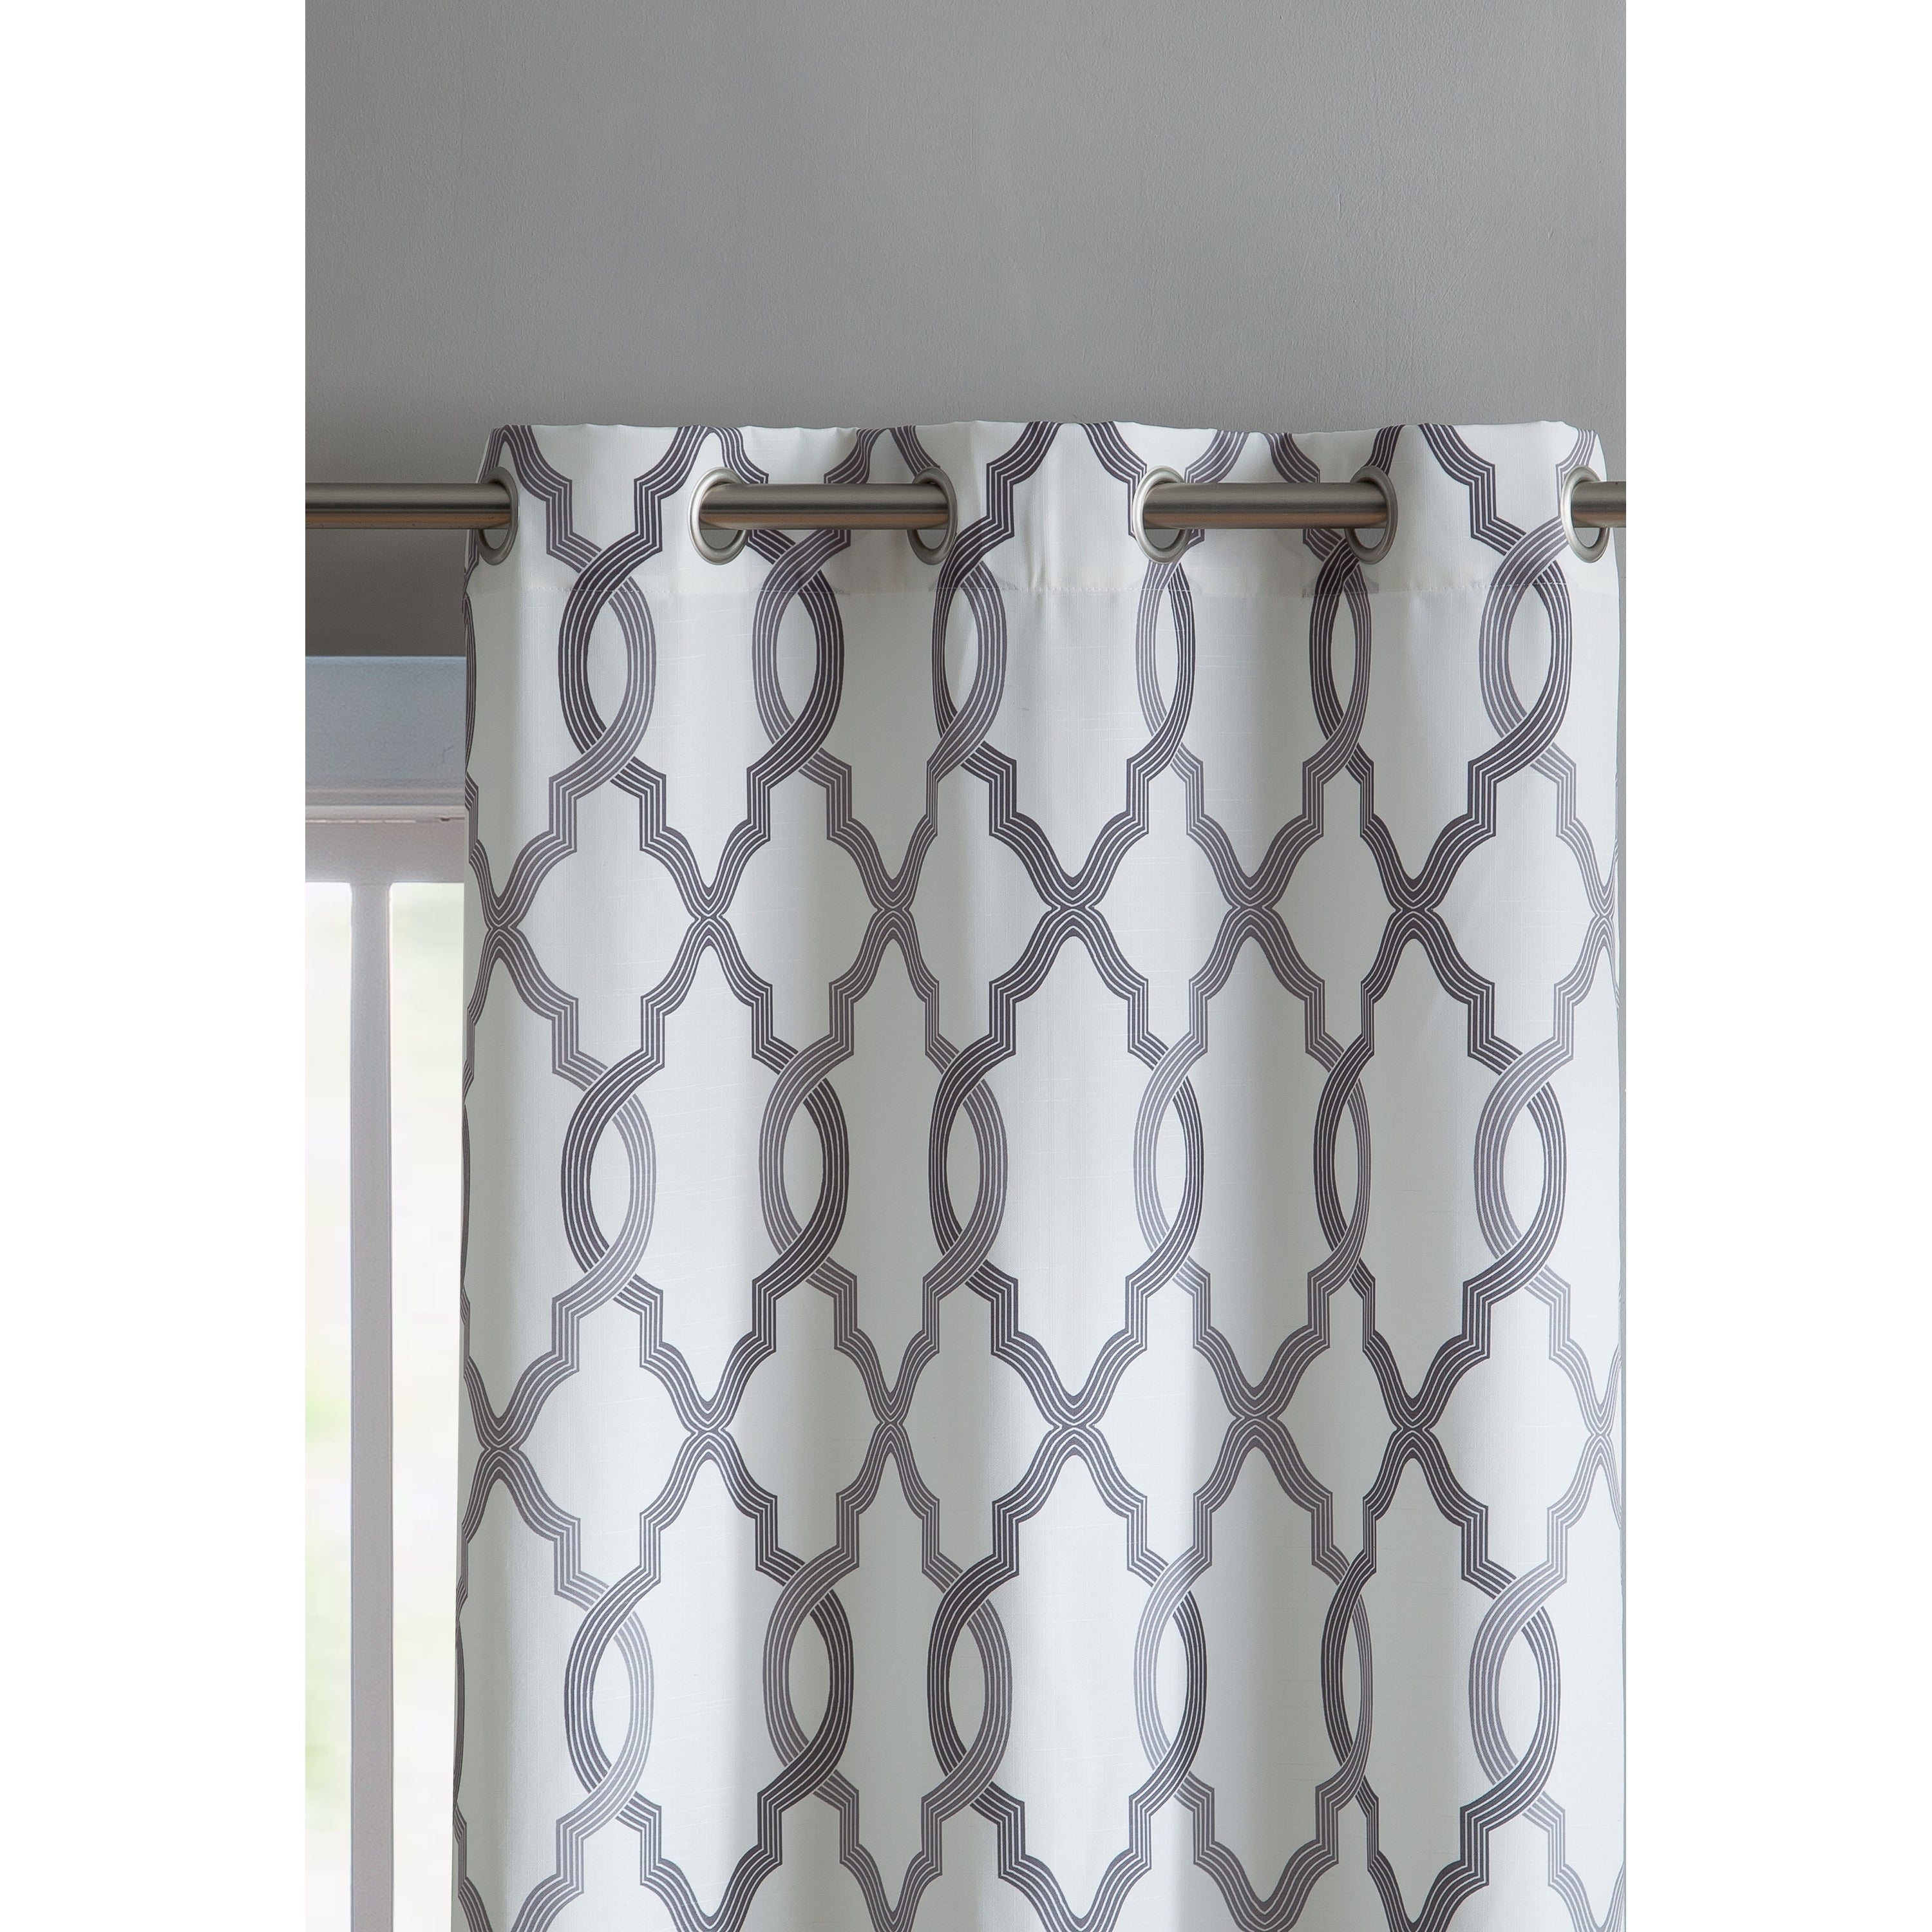 Vcny Home Caldwell Curtain Panel Pair With Caldwell Curtain Panel Pairs (View 20 of 20)